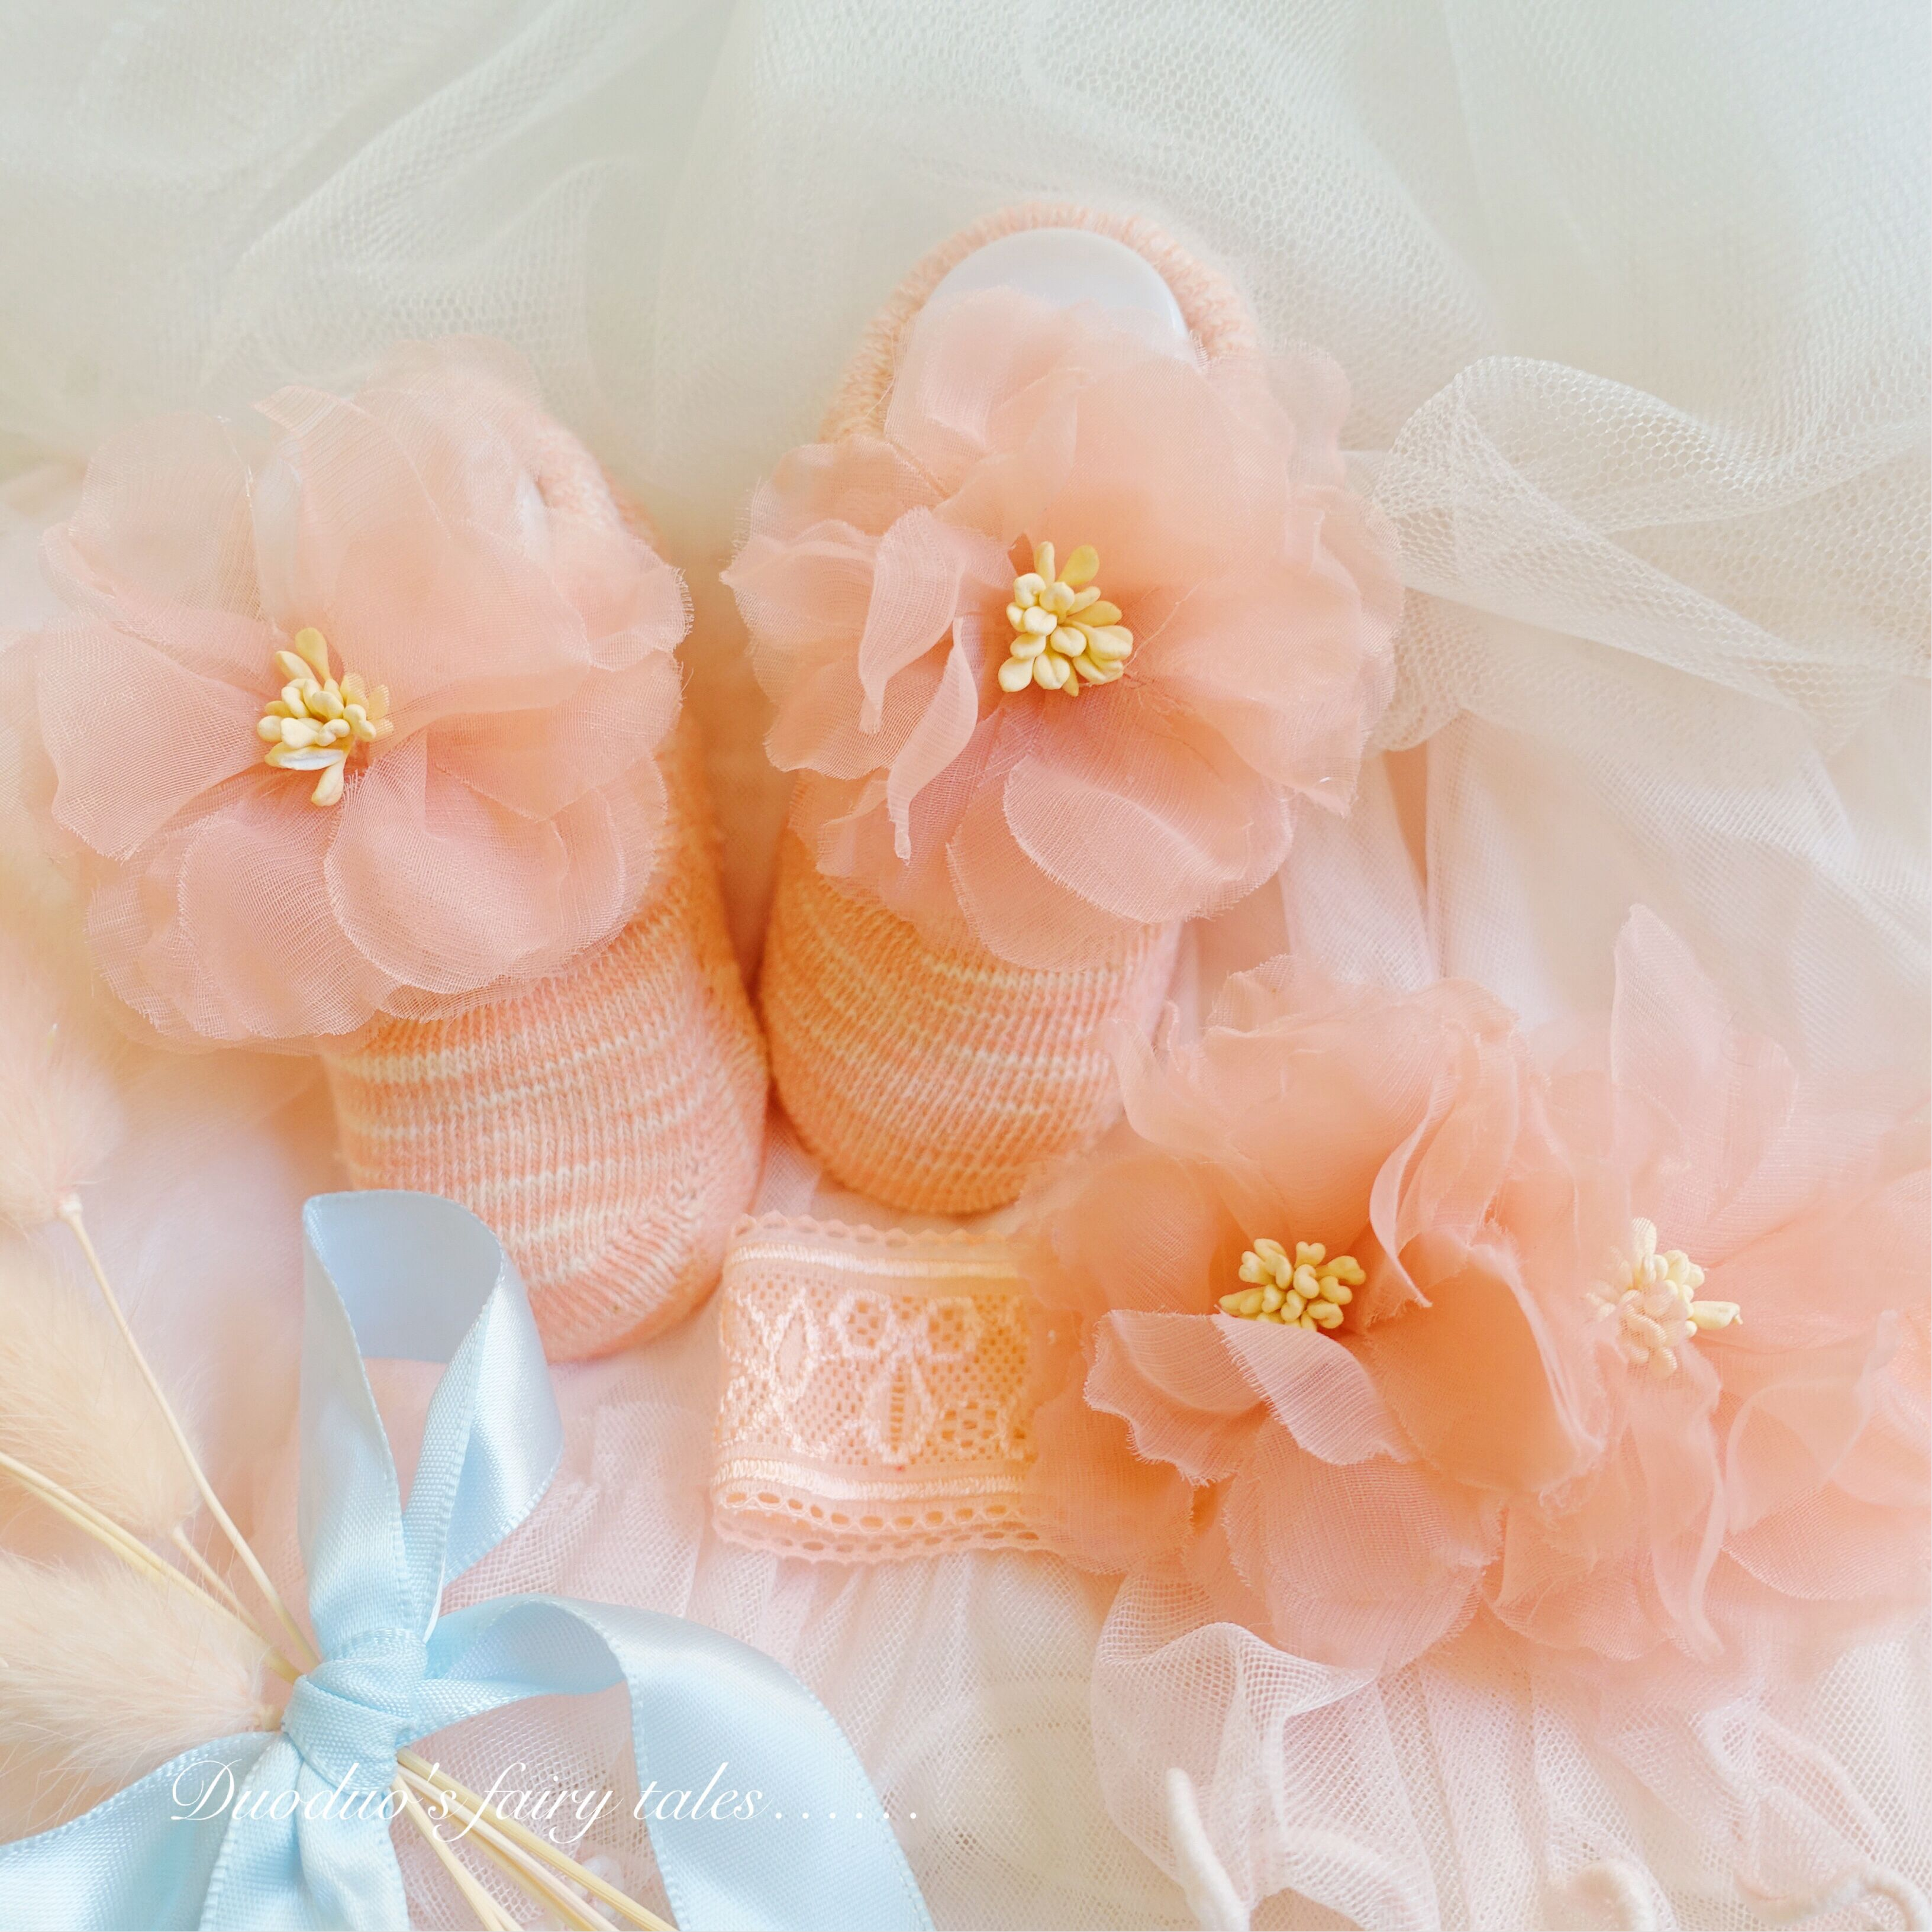 Baby hair with socks baby head flower boat socks accessories Century Gift orange powder suit light peach blossom